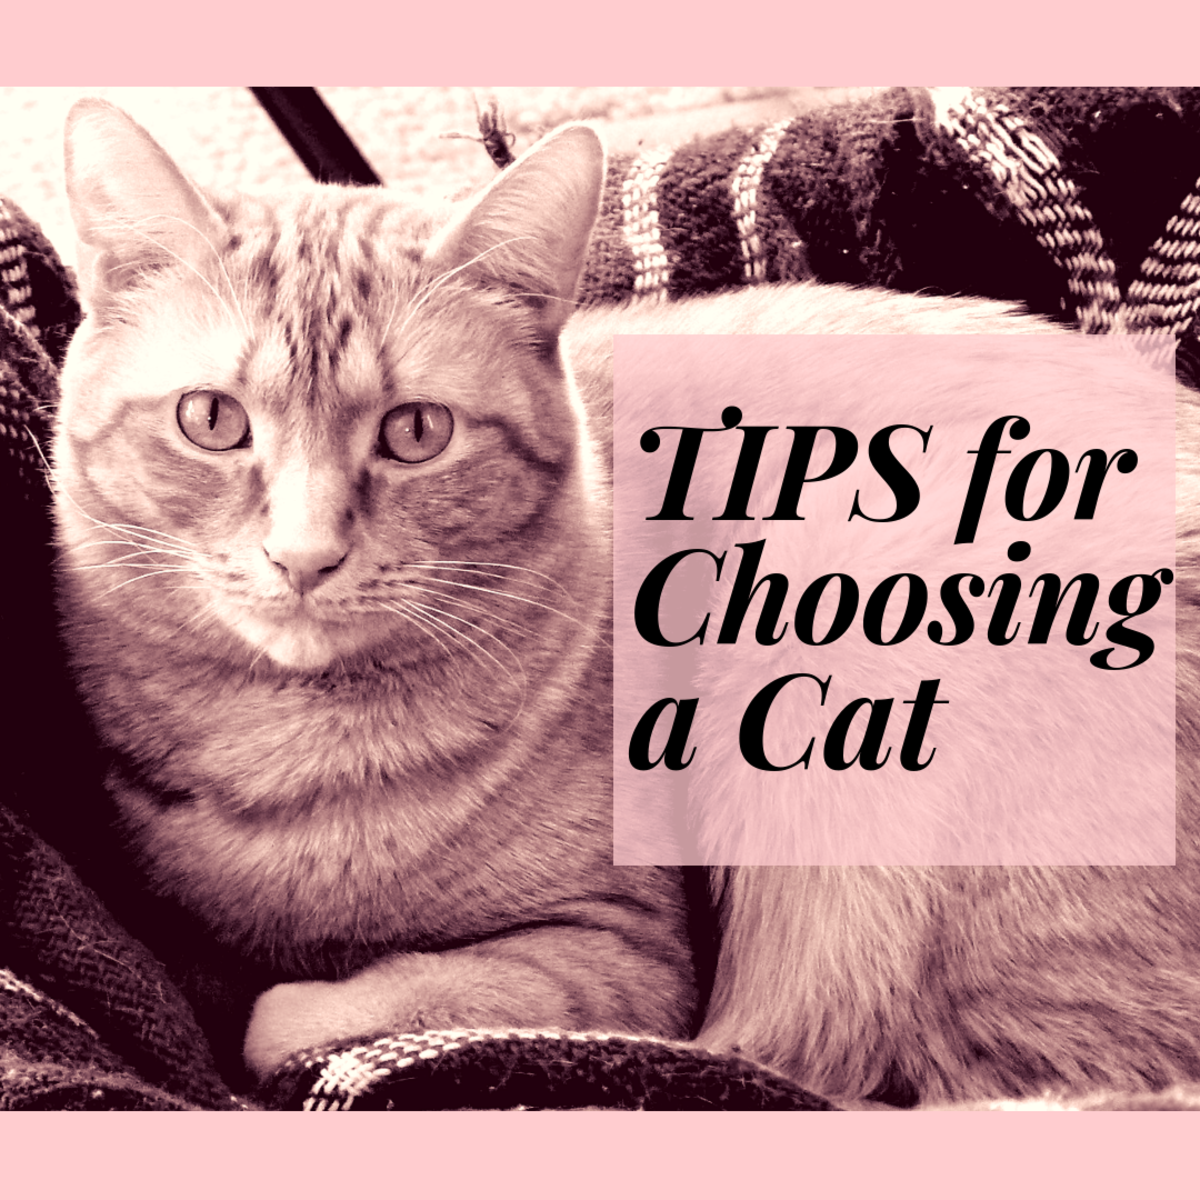 8 Tips for Choosing a Cat